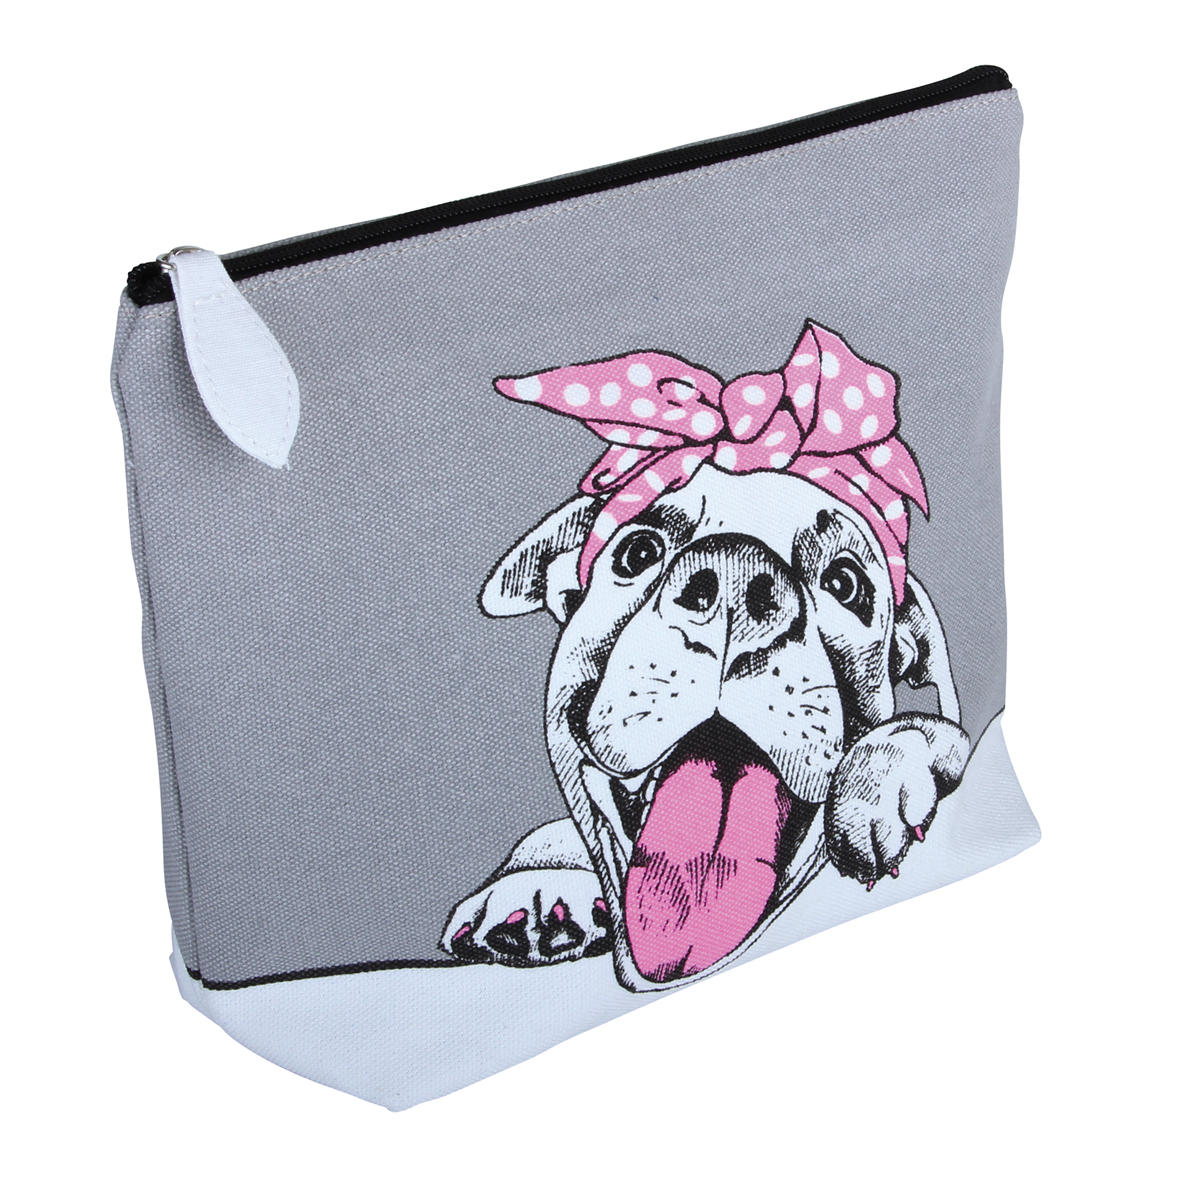 Cutie' Dog Canvas Cosmetic Bag - B2314